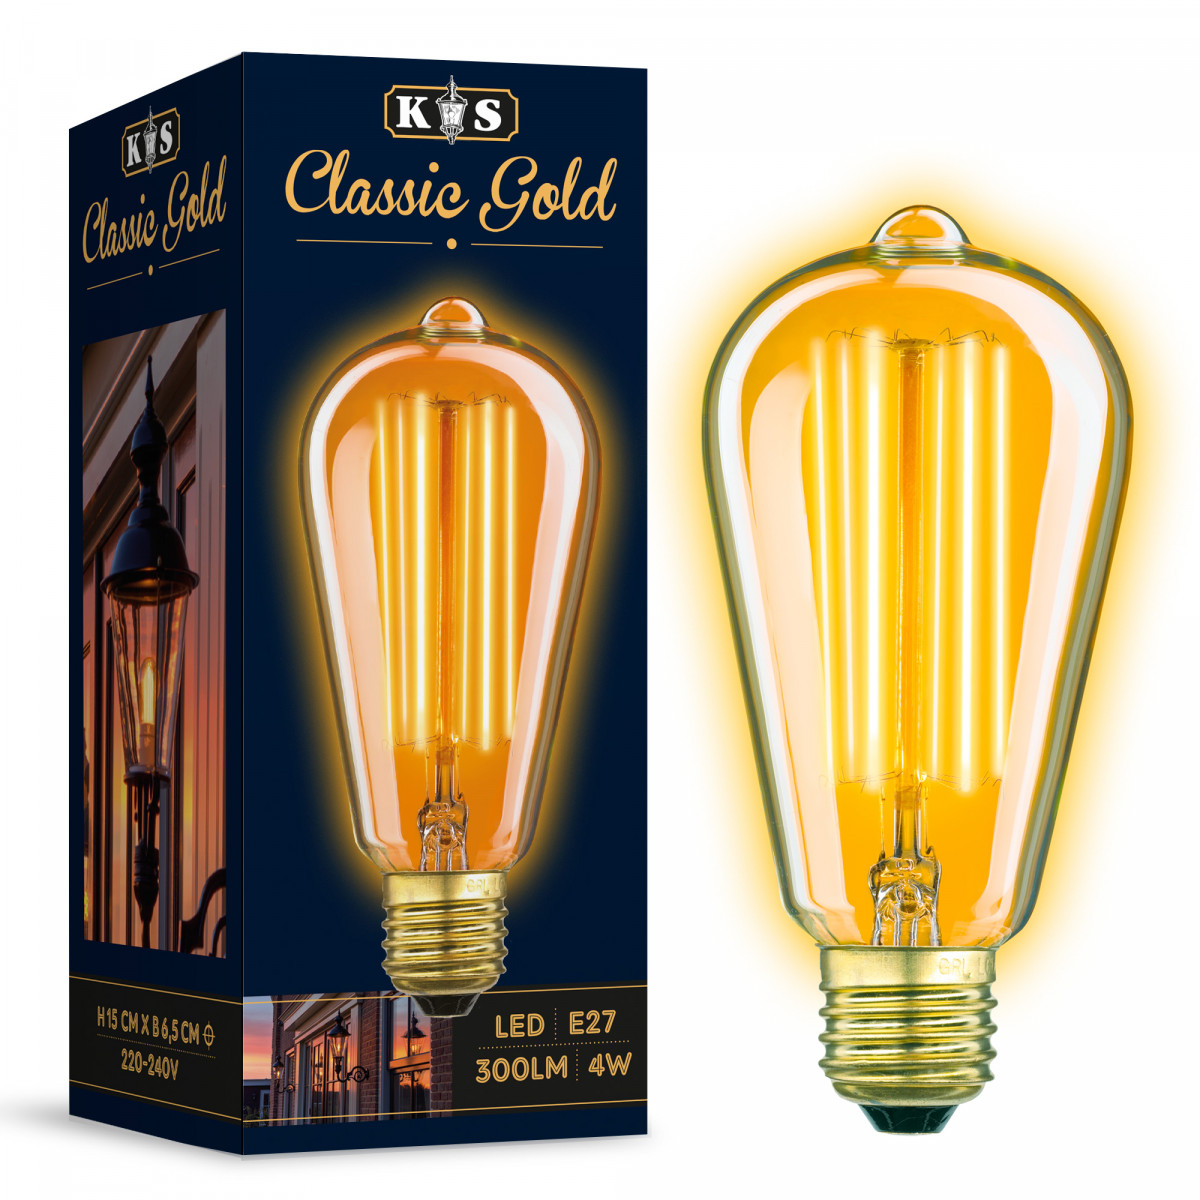 LED Kooldraadlamp Edison 4 watt